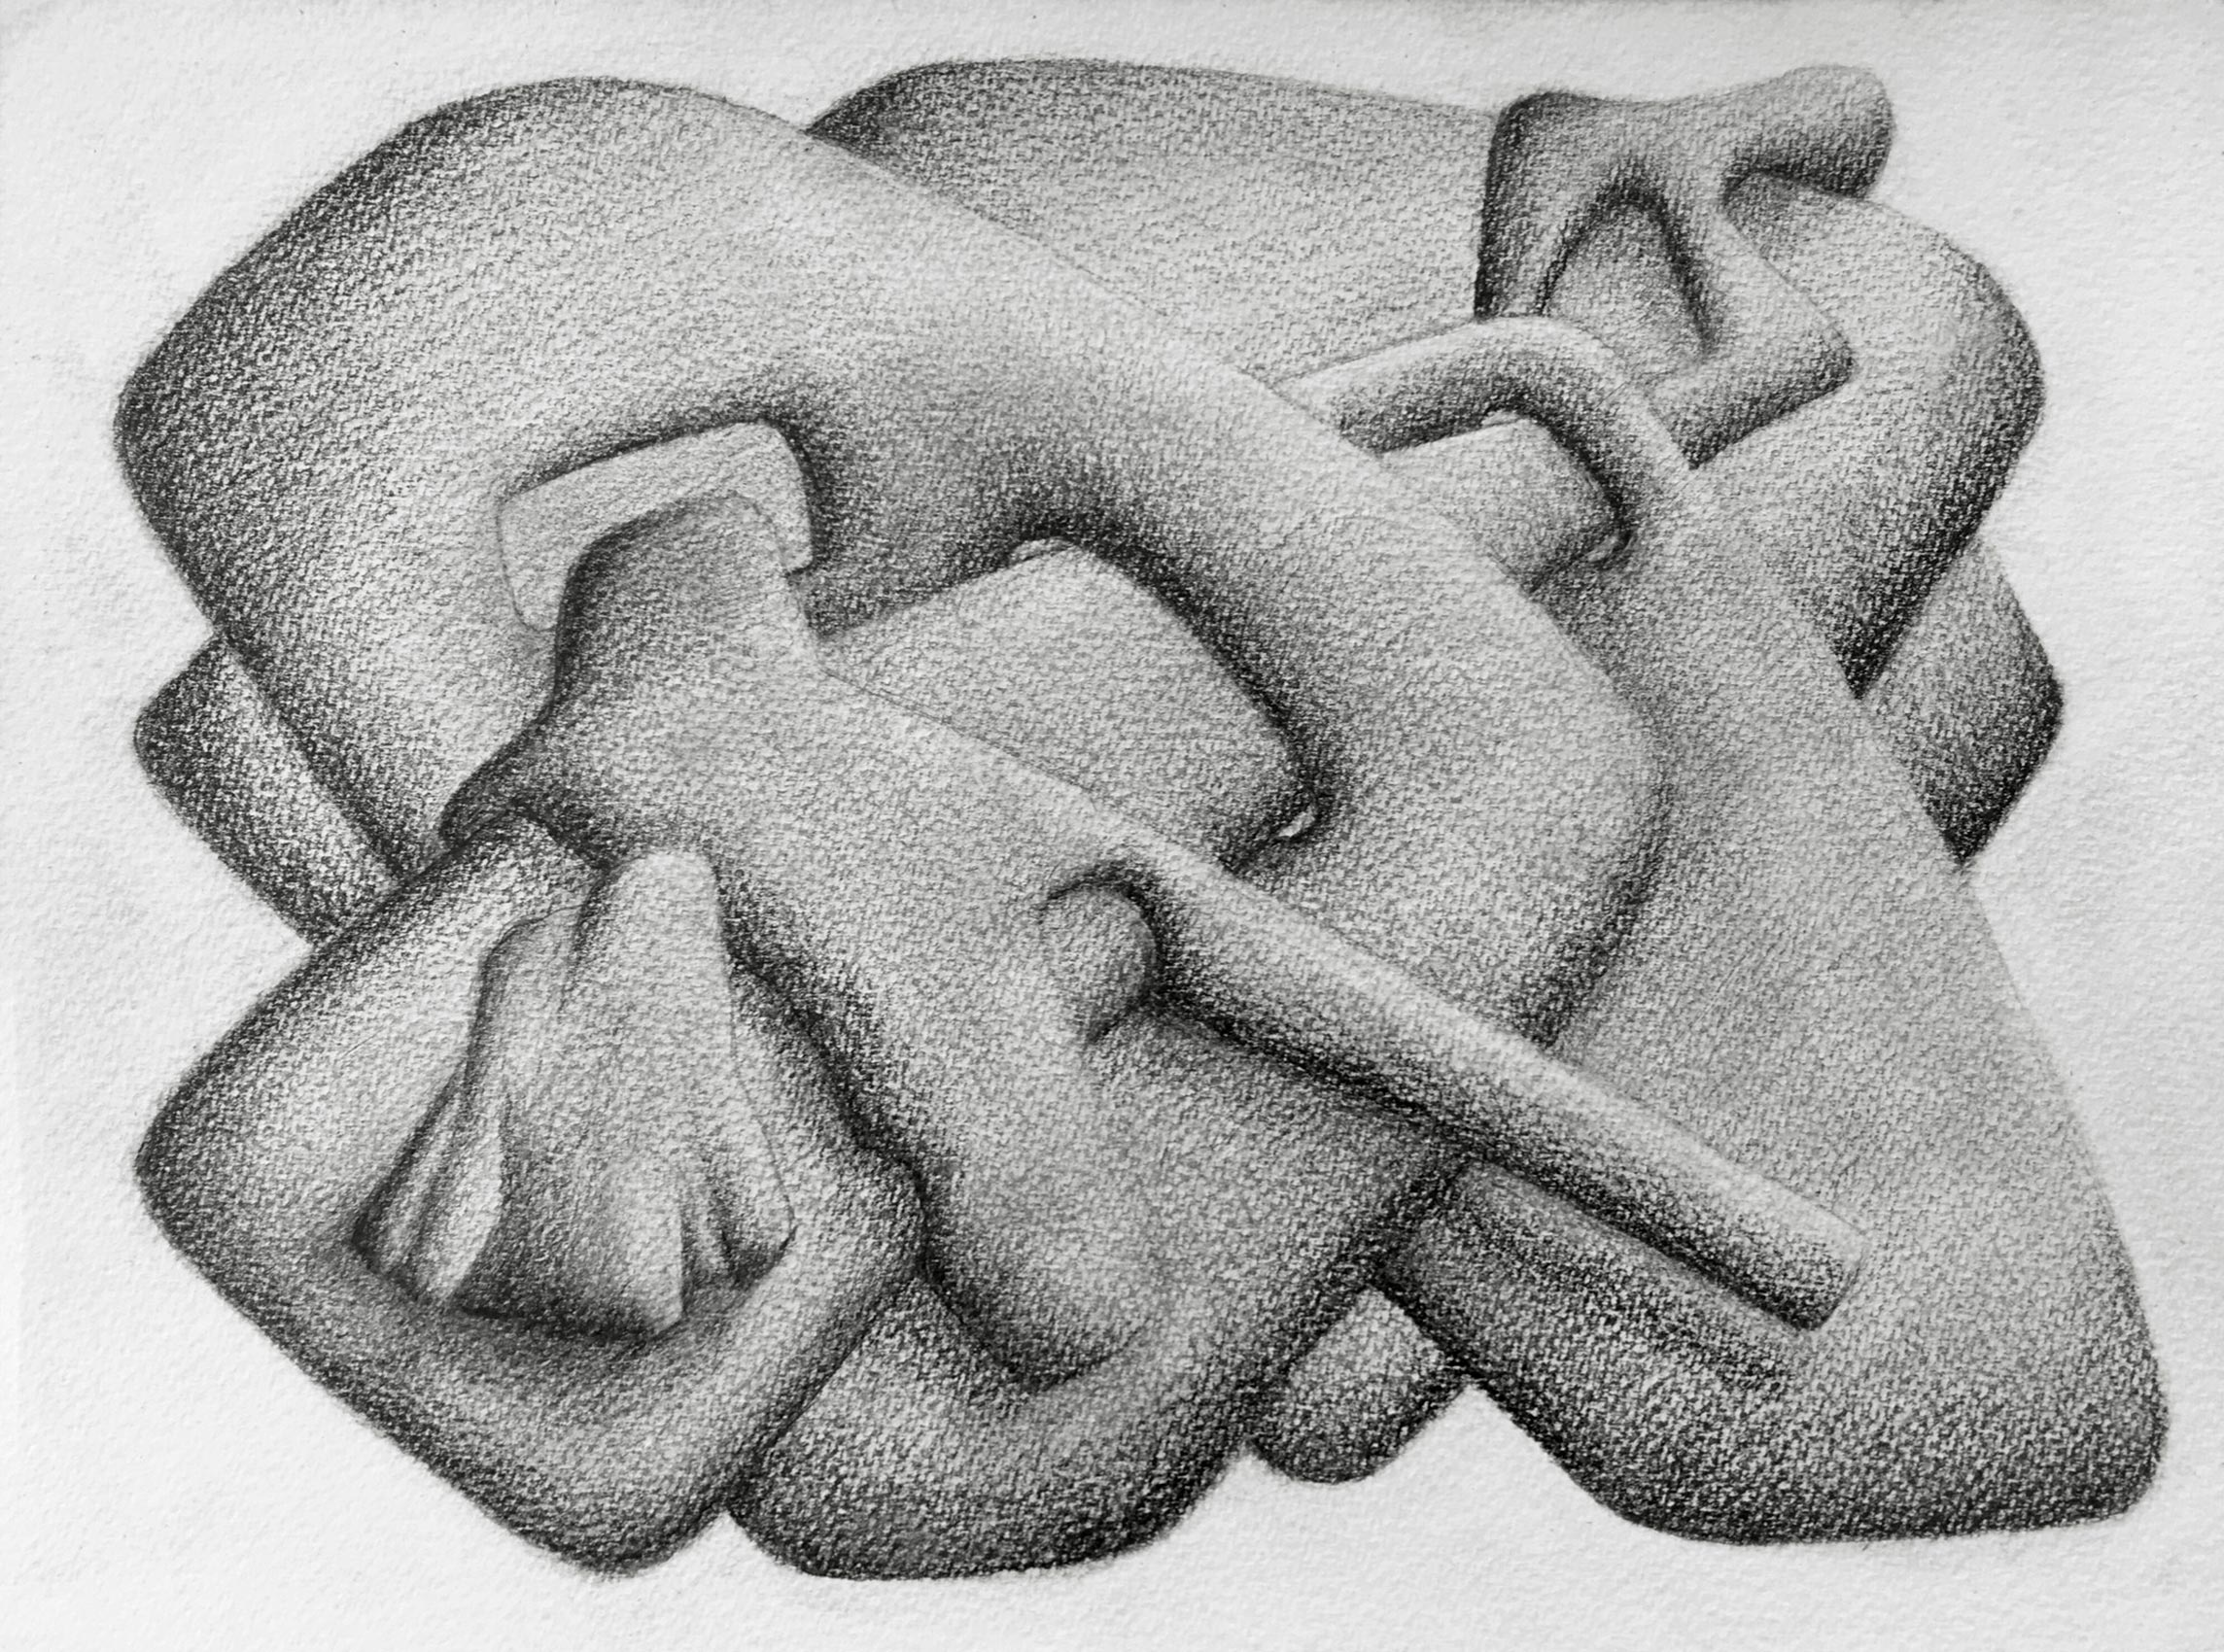 [No Title] N°DNT5,  2019, Pencil on paper, 24cm by 32cm, 2019 ©Pascal Demeester